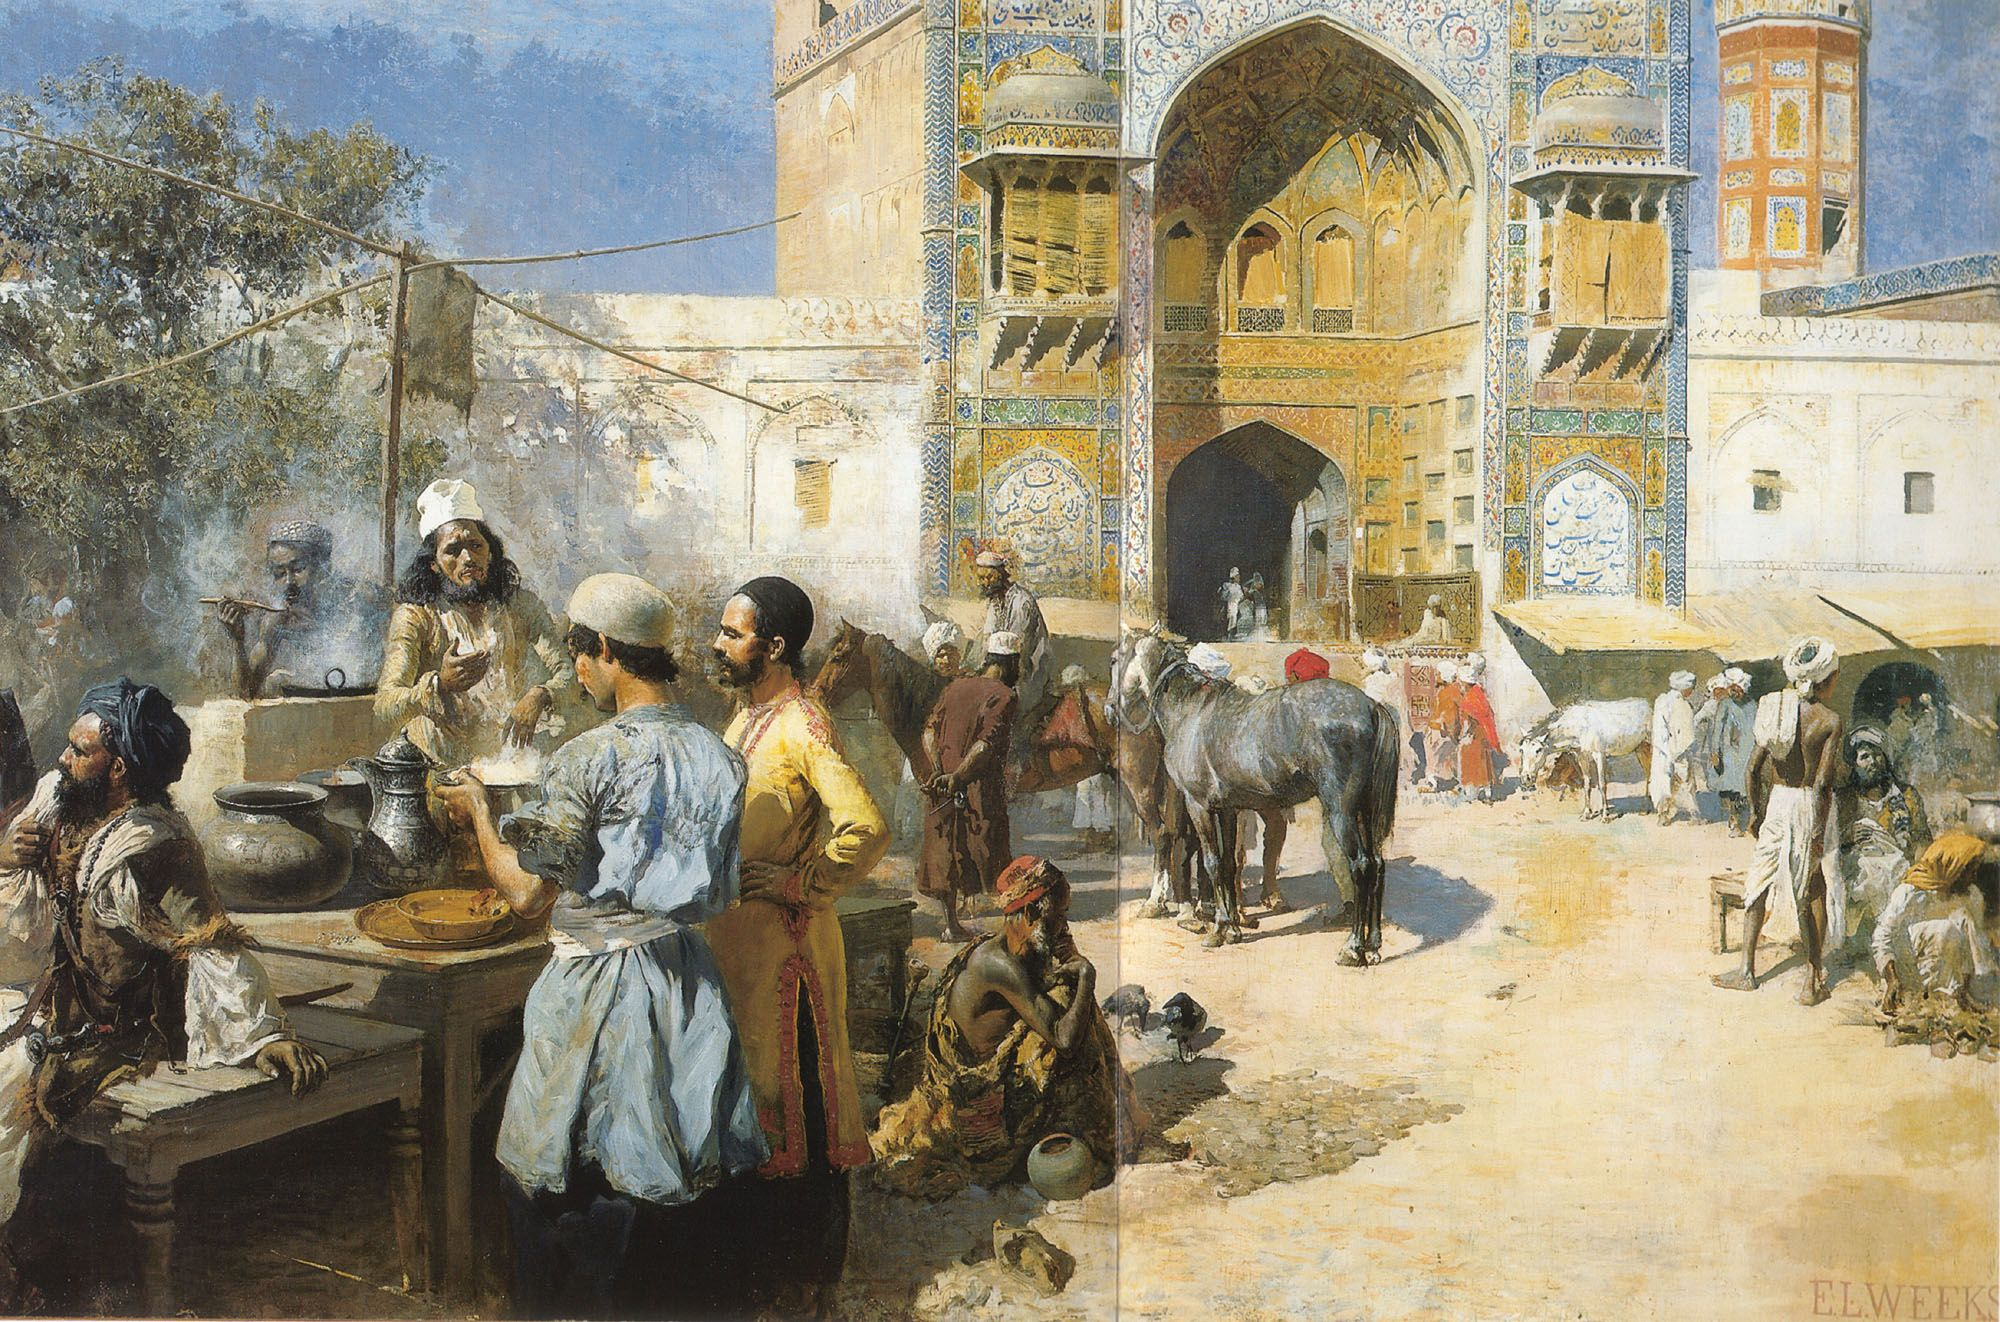 Mughal Empire - Wikipedia, the free encyclopedia The Bazaar outside the Wazir Khan Mosque in Lahore.